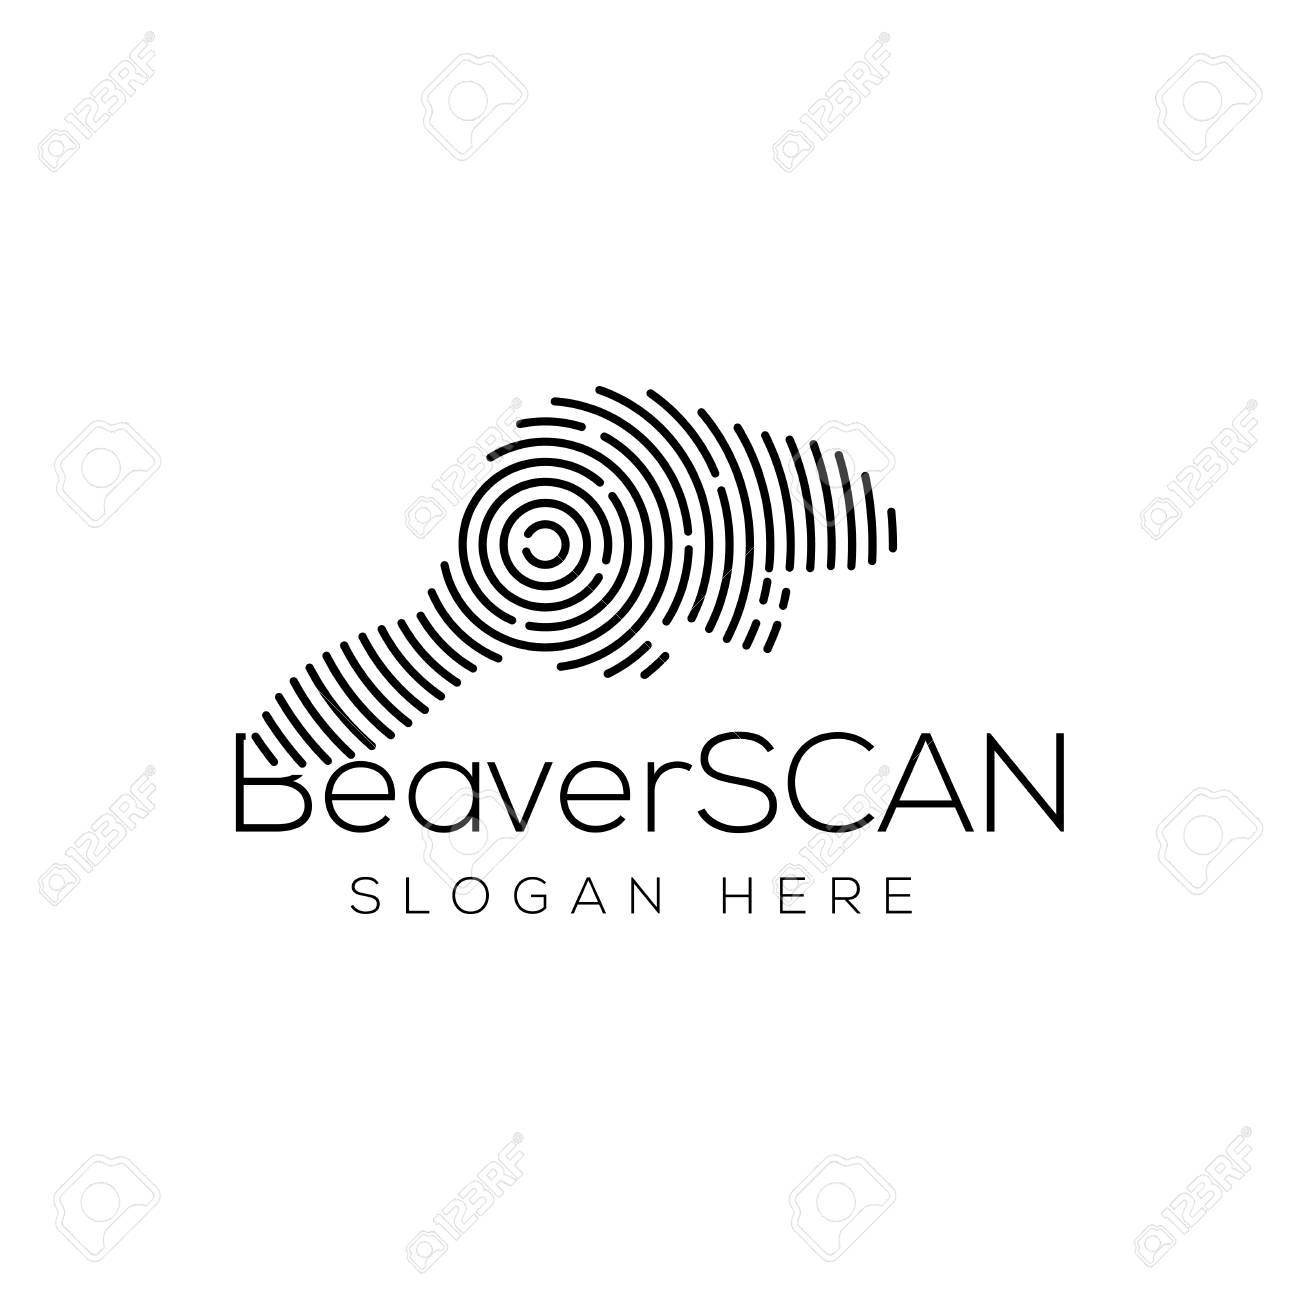 Beaver Scan Technology Logo Vector Element Animal Technology